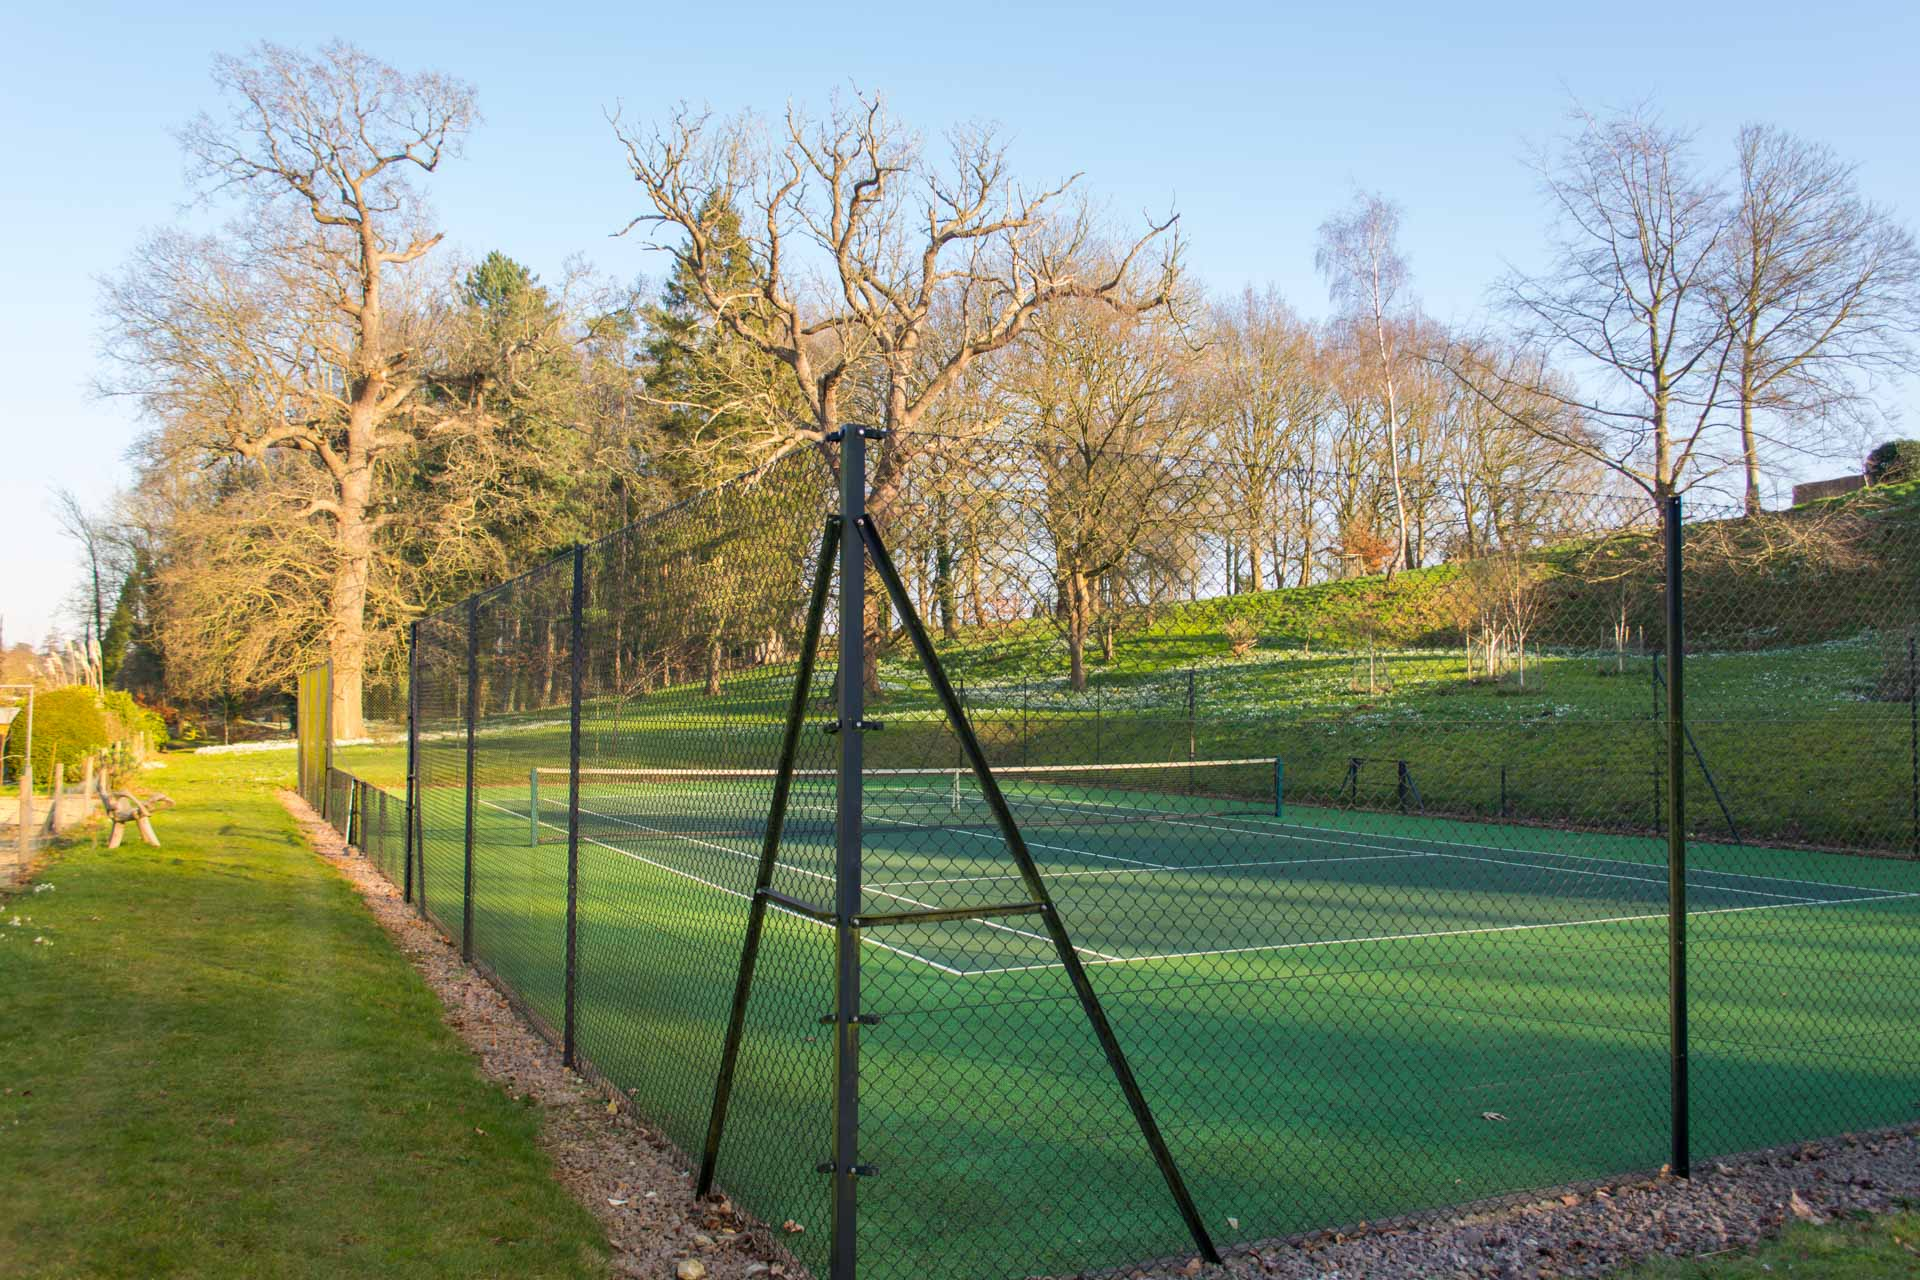 tennis court, great for family holidays.